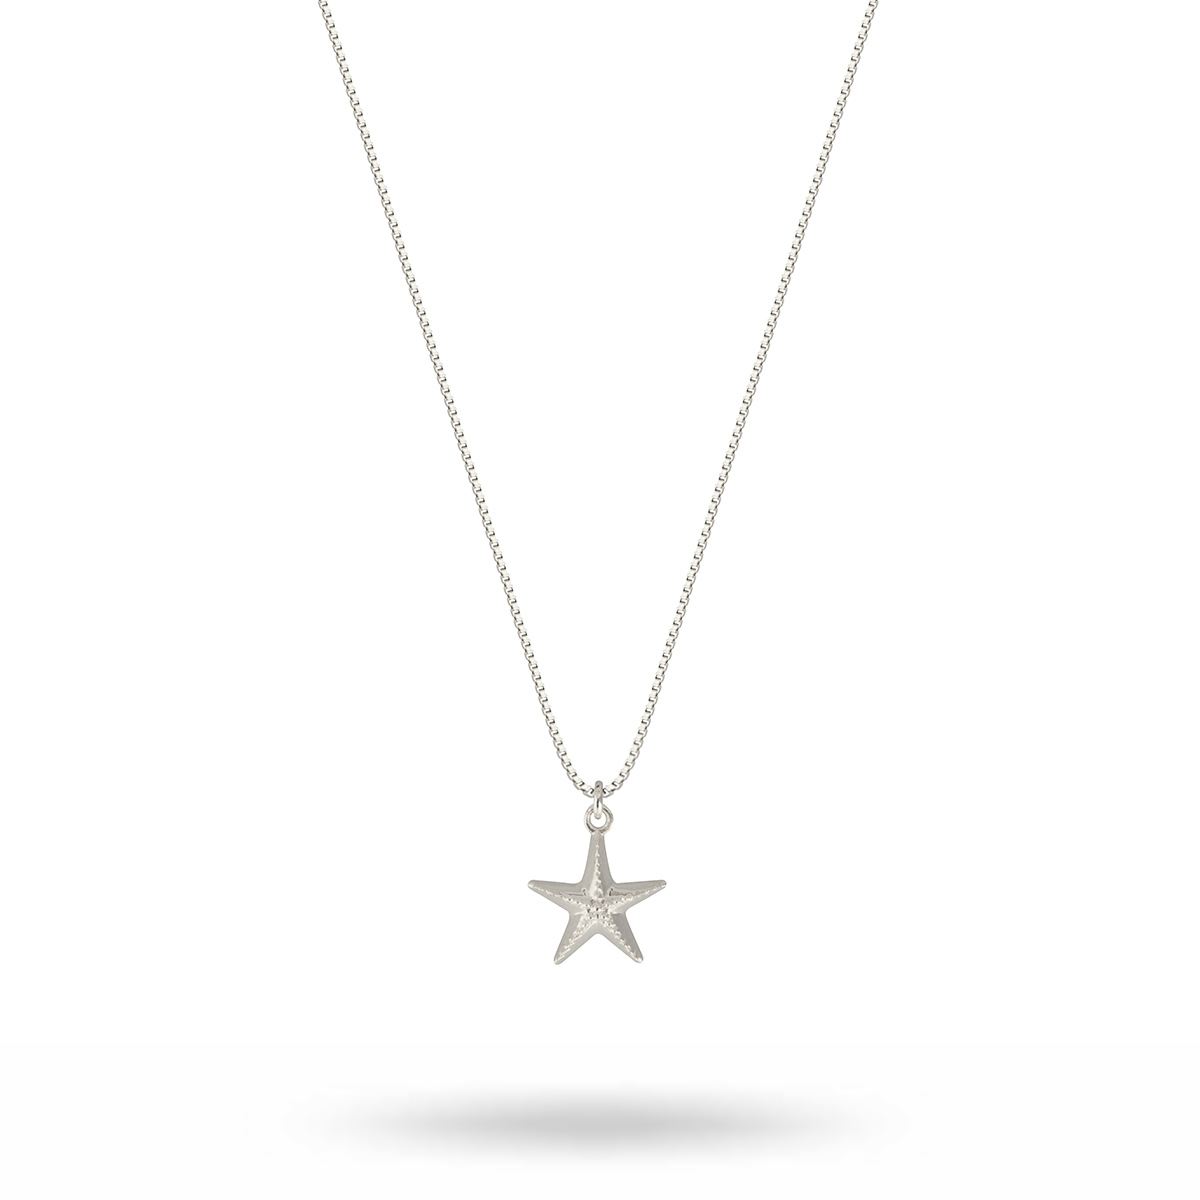 NS1239-1-Beaches-Starfish-necklace-silver